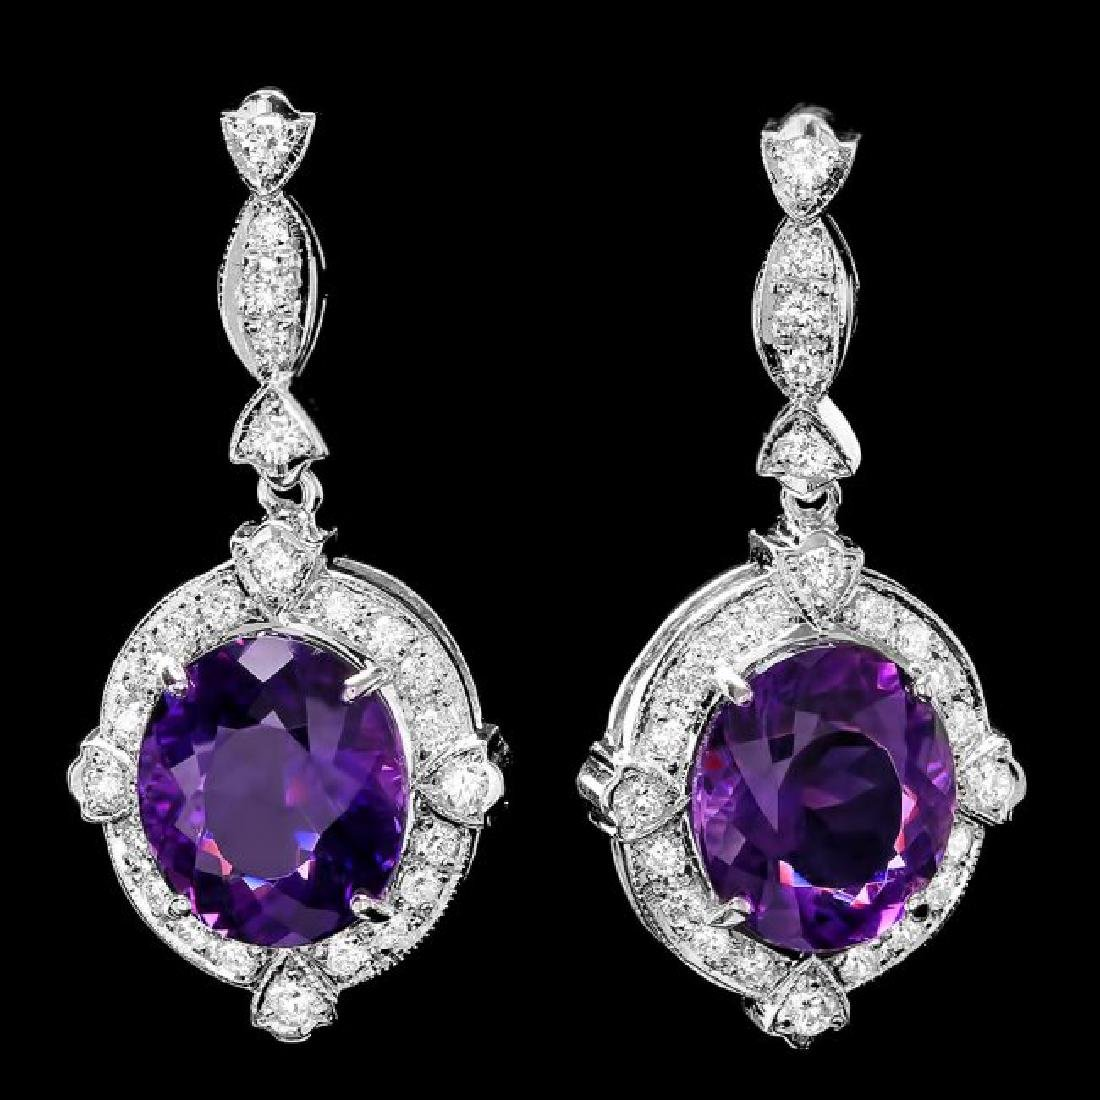 14k Gold 16ct Amethyst 1.70ct Diamond Earrings